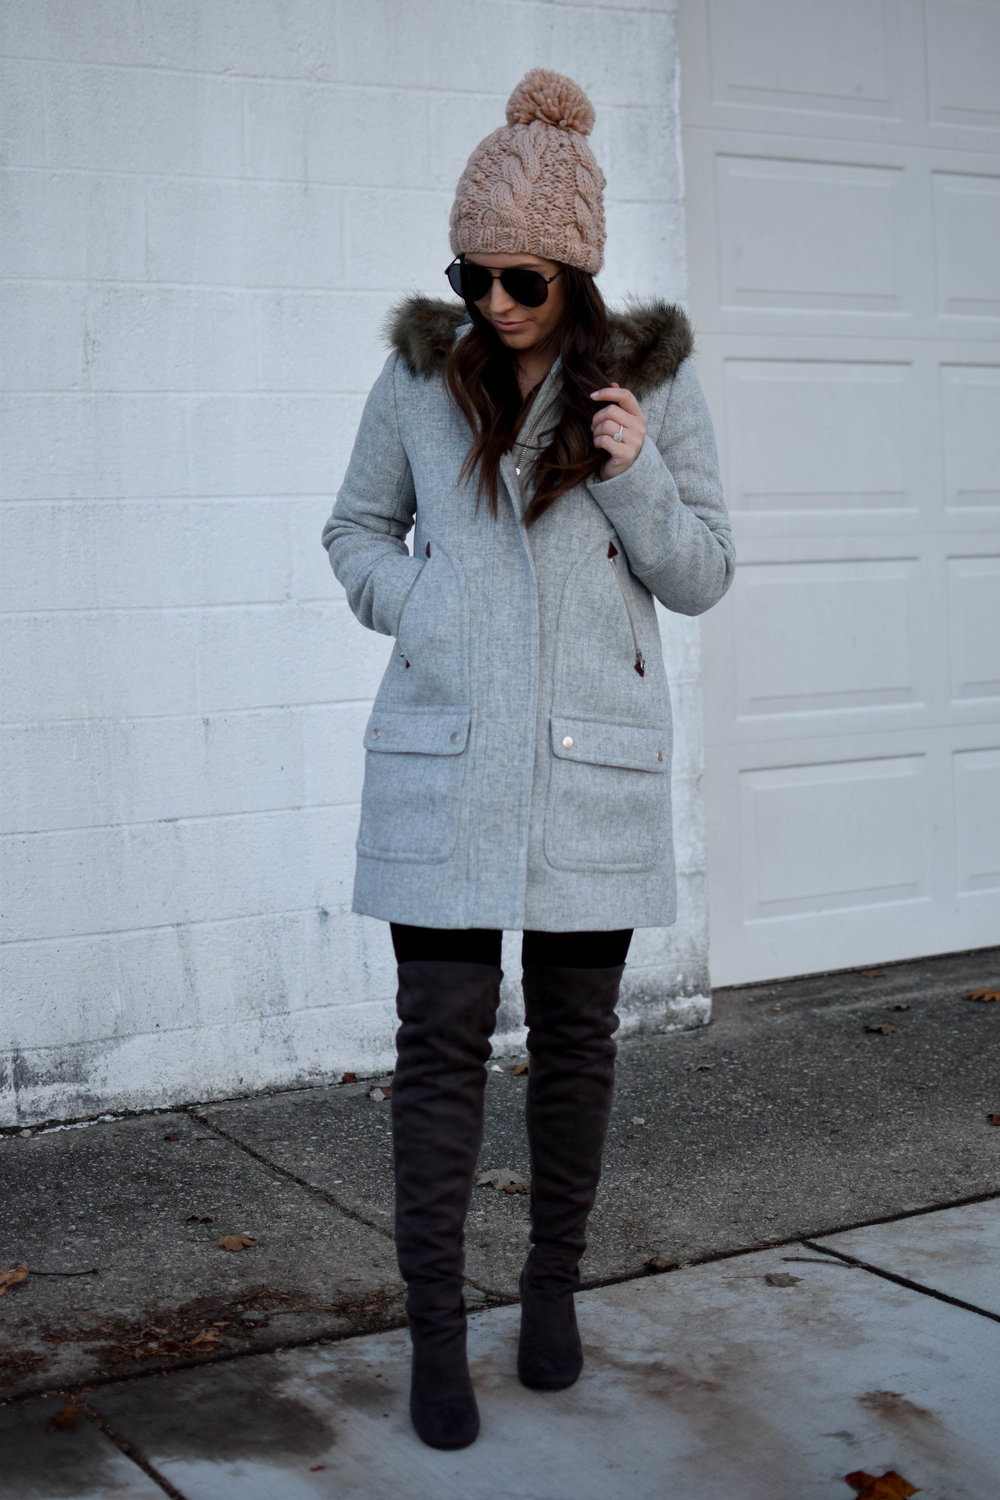 The J. Crew Coat You Need This Winter | Pine Barren Beauty | winter fashion, winter coat, winter outfit idea